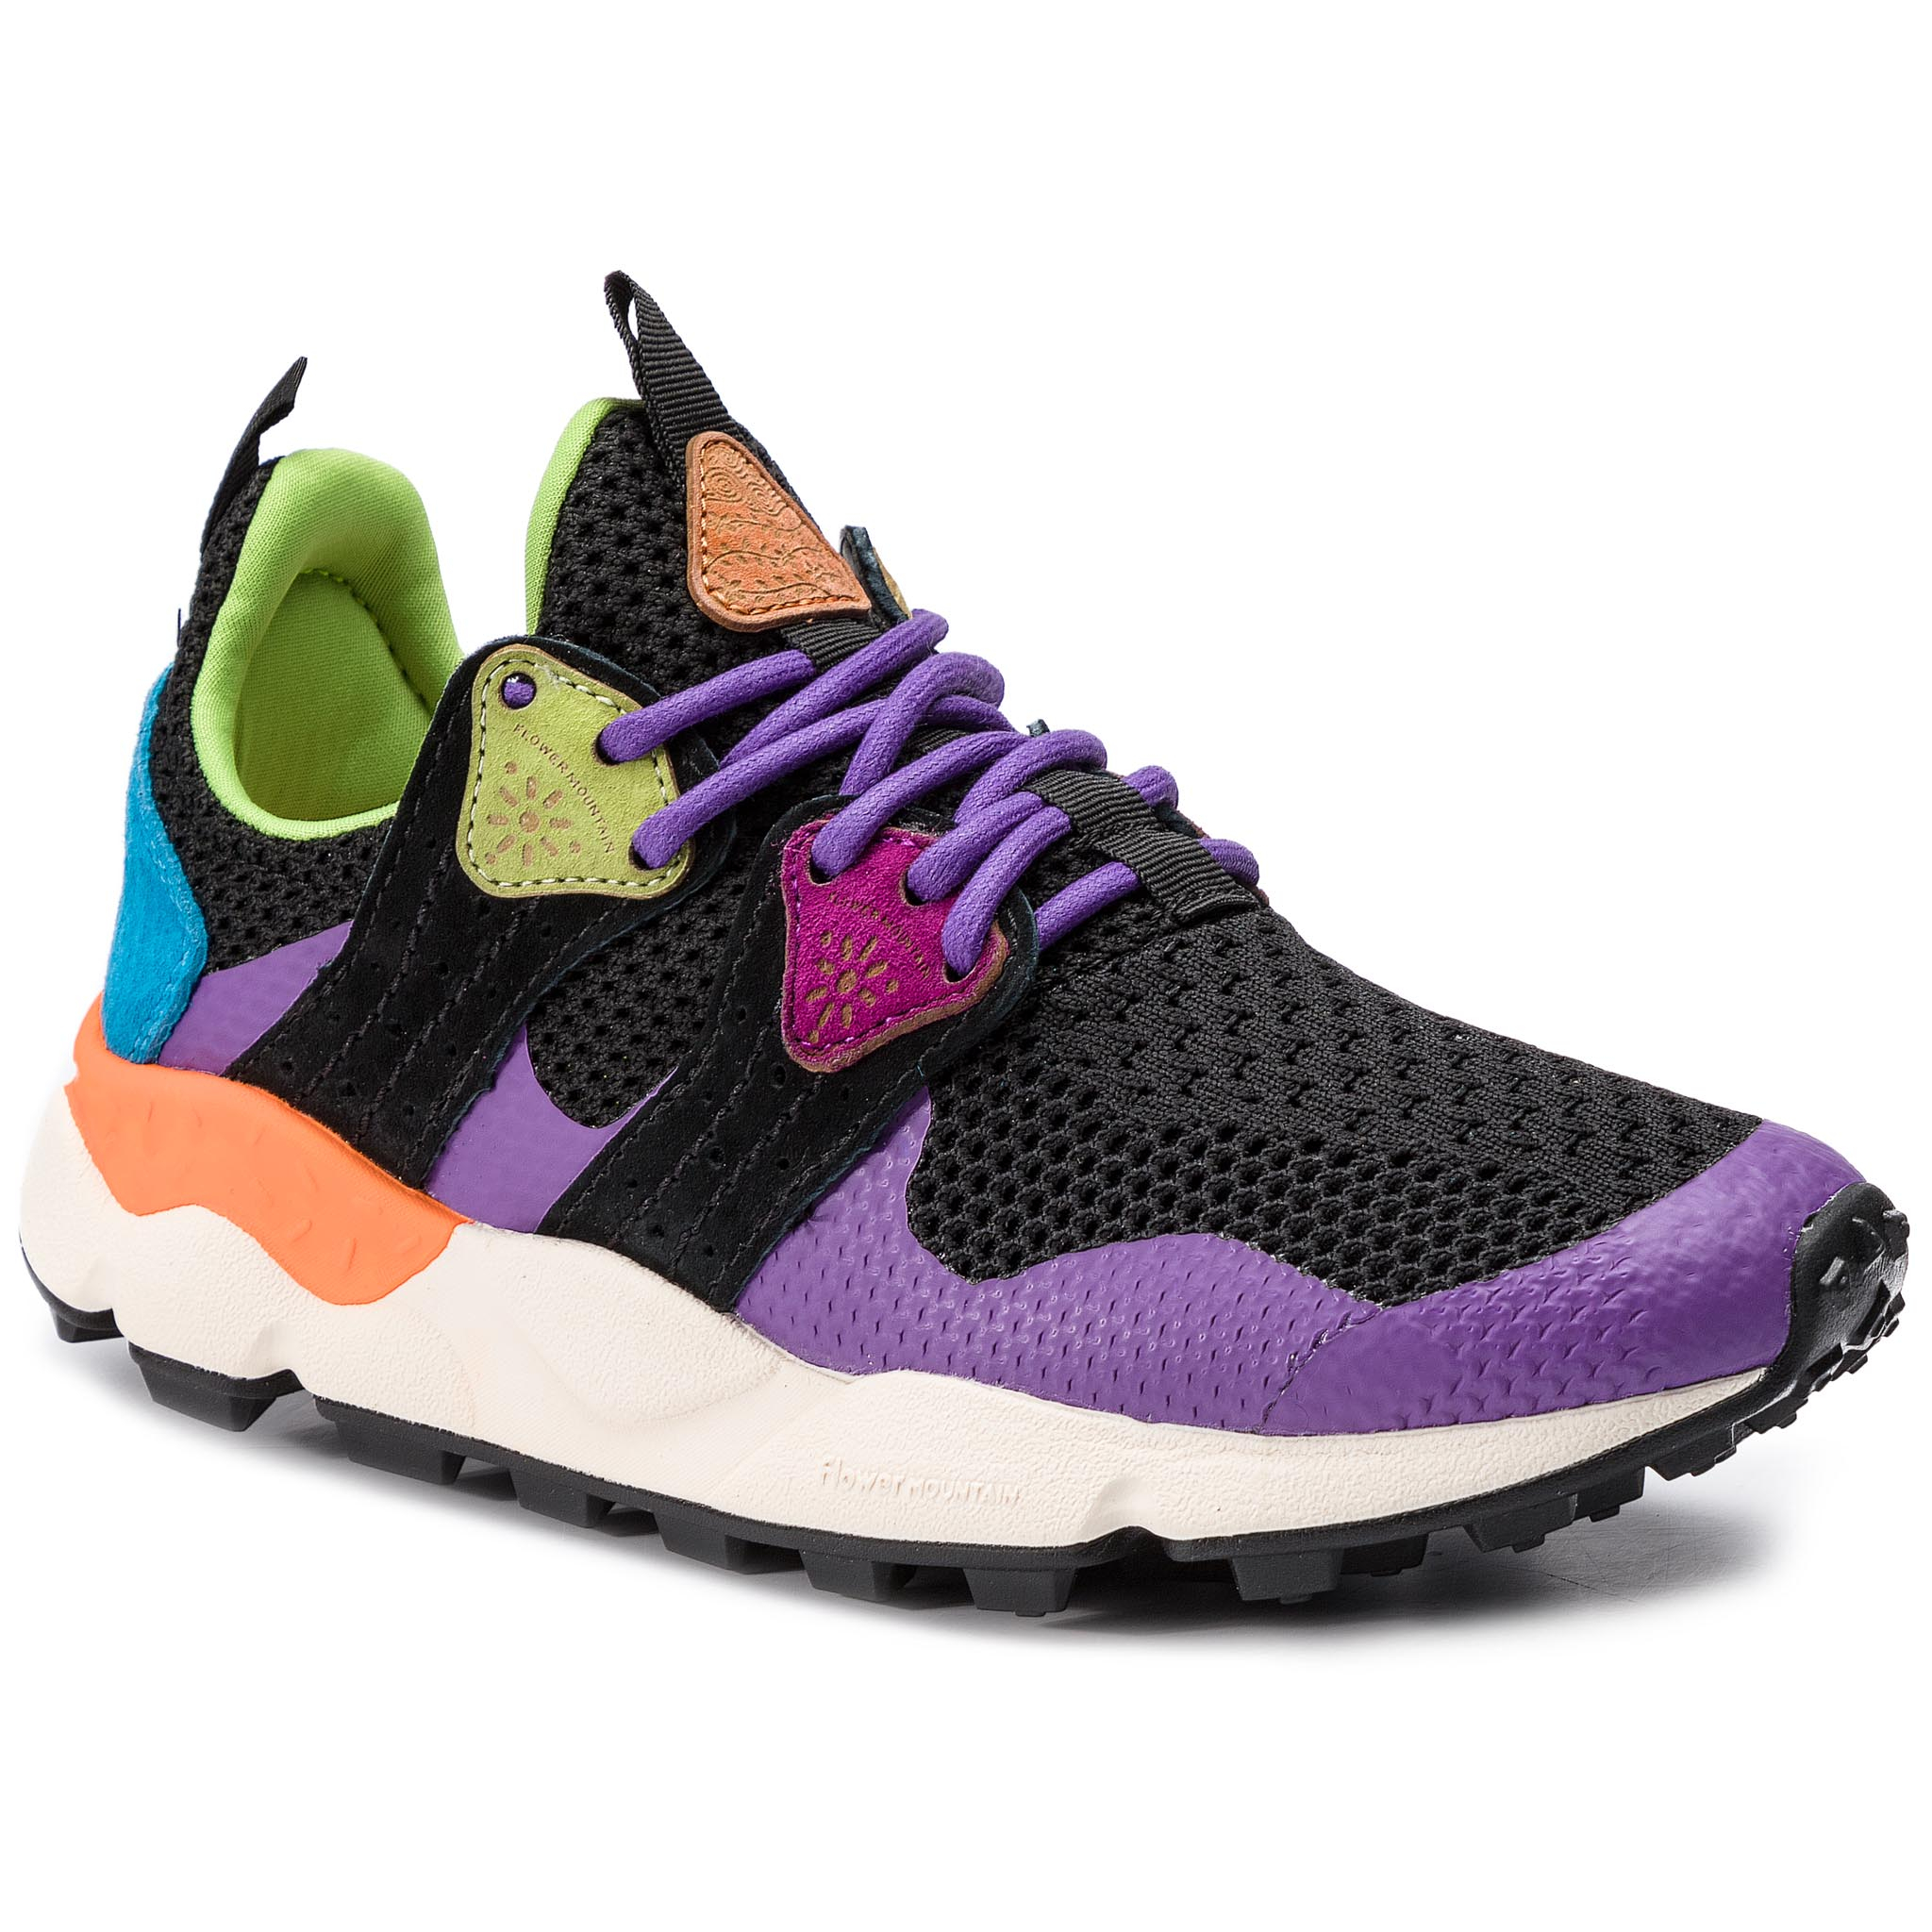 Sneakers FLOWER MOUNTAIN - Corax 0012013757.02.0I02 Viola Multi